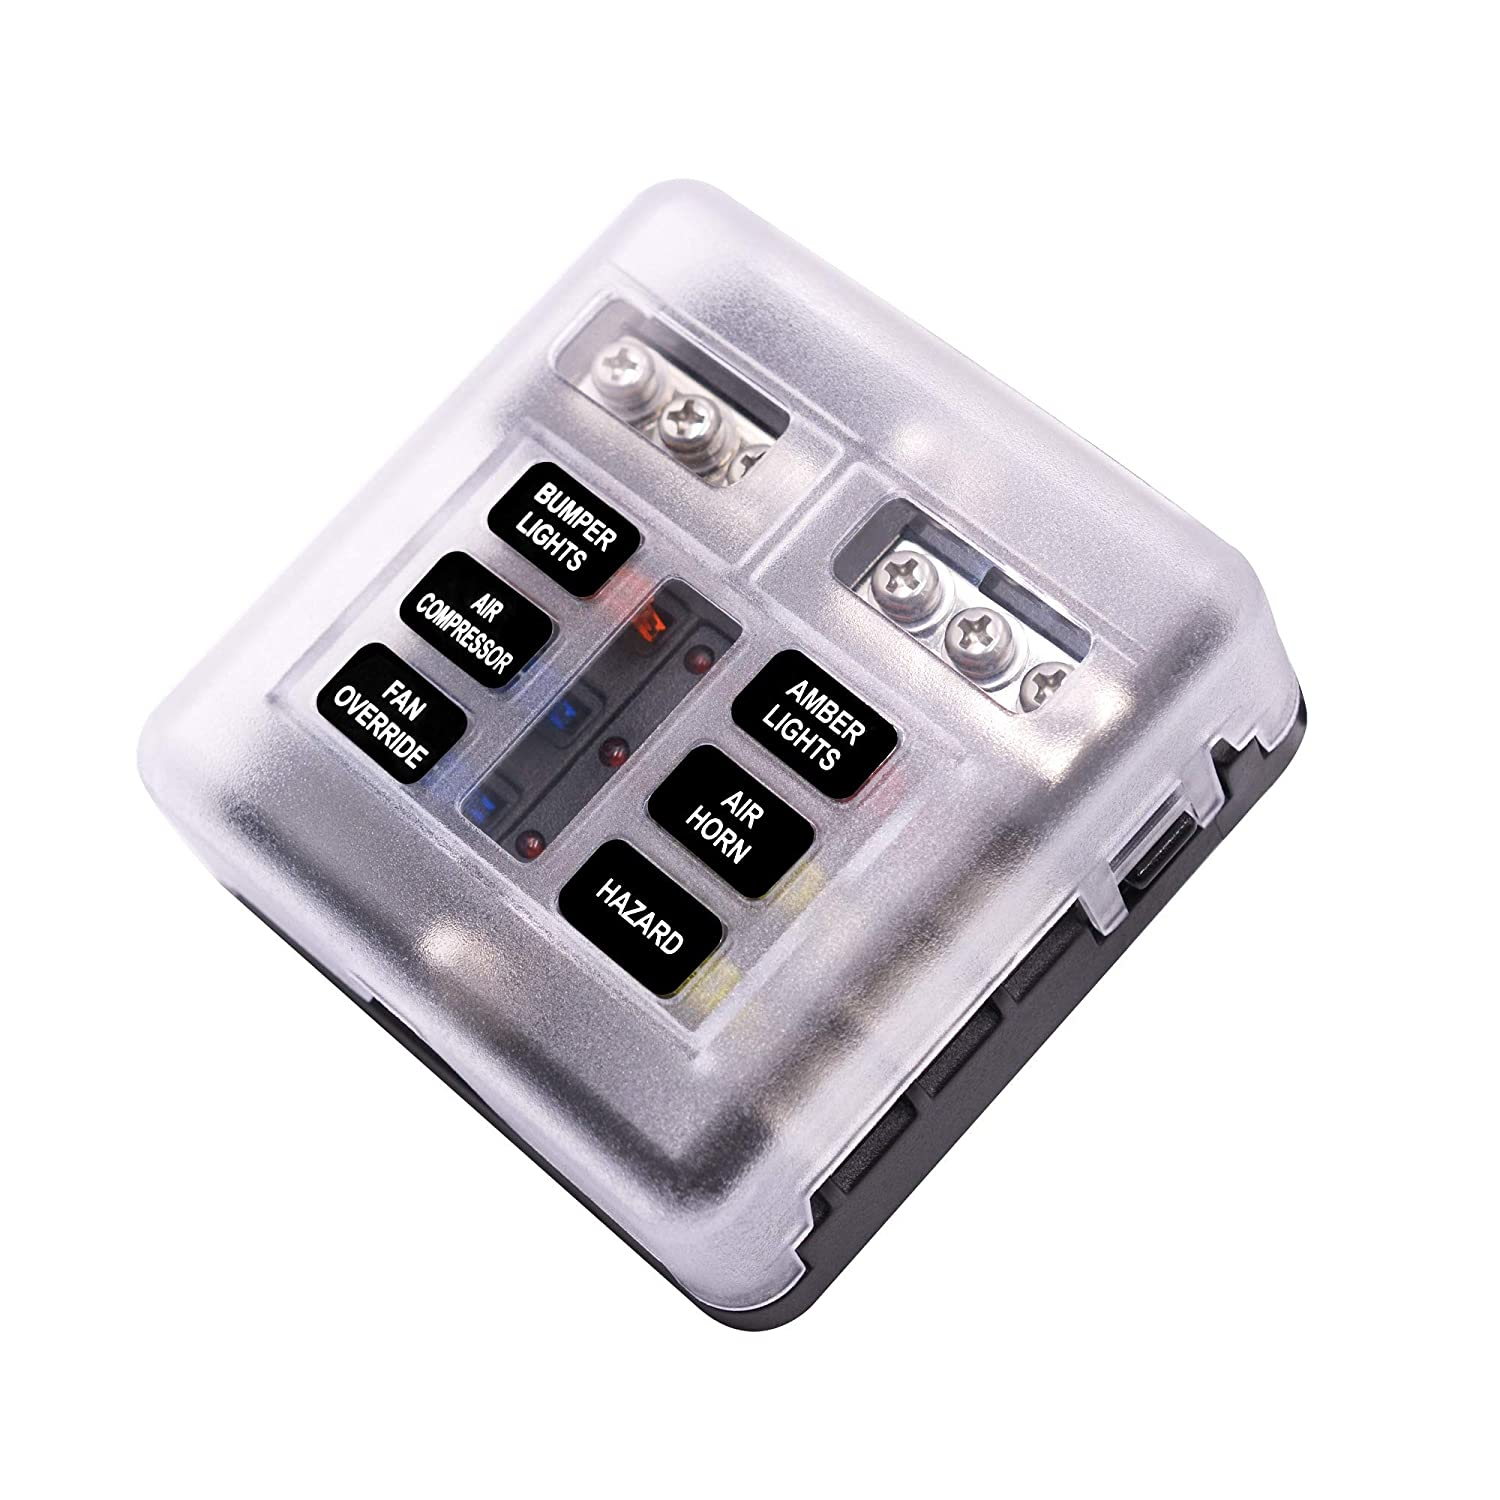 6 Ways Fuse Box Holder with Clear Cover for Auto Car Boat Marine Trike EZITOWN ELECTRICAL FACTORY